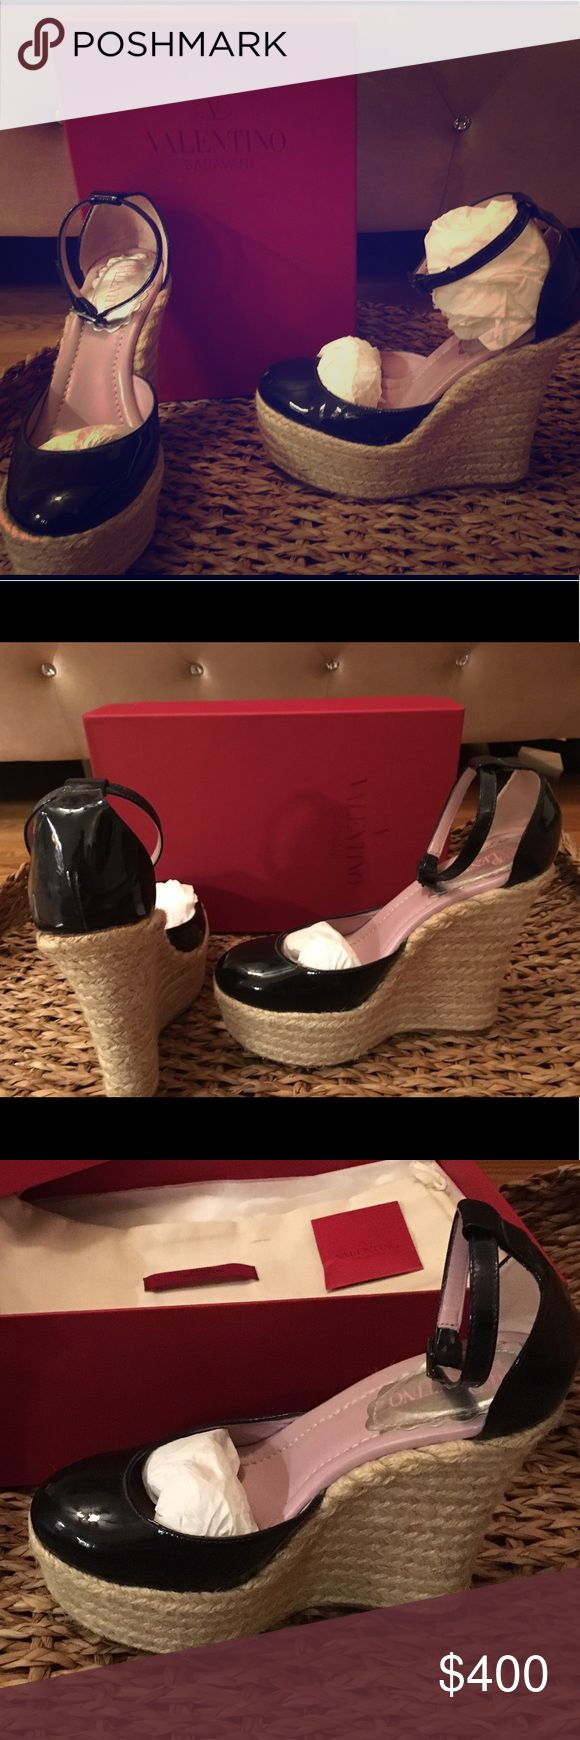 Authentic Valentino wedges 👌🏽🙌🏻 These shoes are in great condition. They have been worn a couple times but are good as new!! Take it while it's hot!! 👅💋 Valentino Shoes Wedges